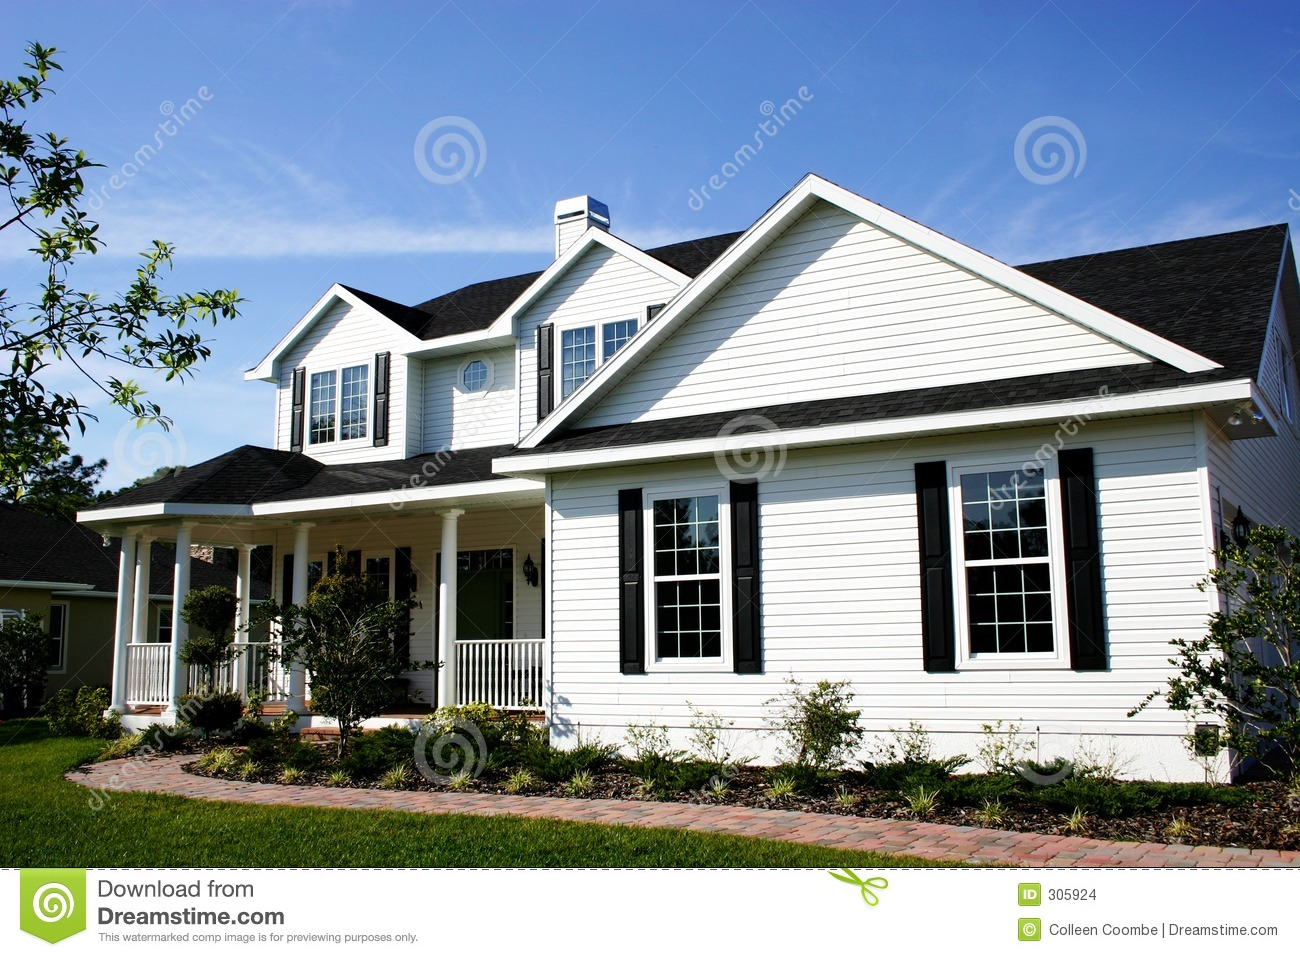 Cozy country home stock images image 305924 for Home de